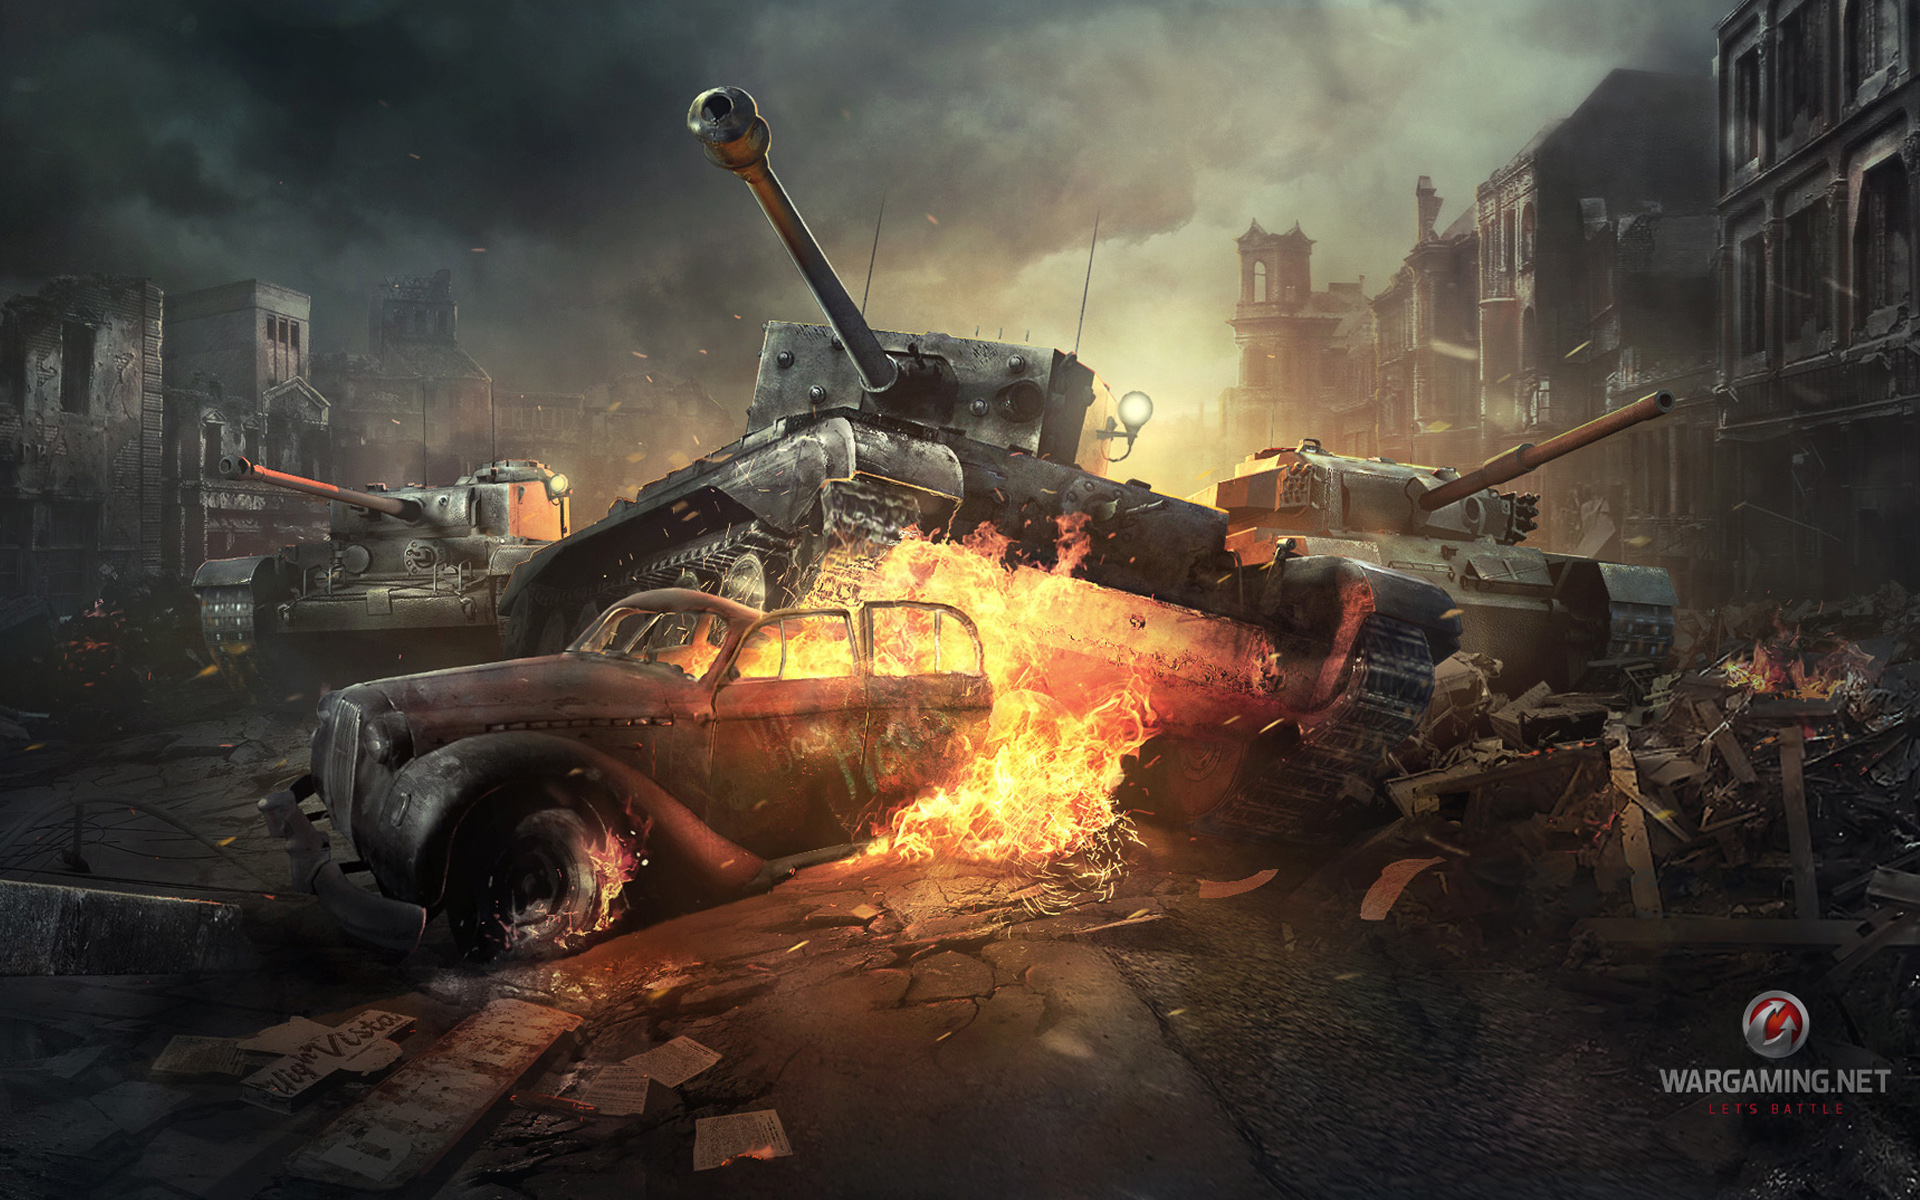 World of Tanks Online Game 1548.8 Kb